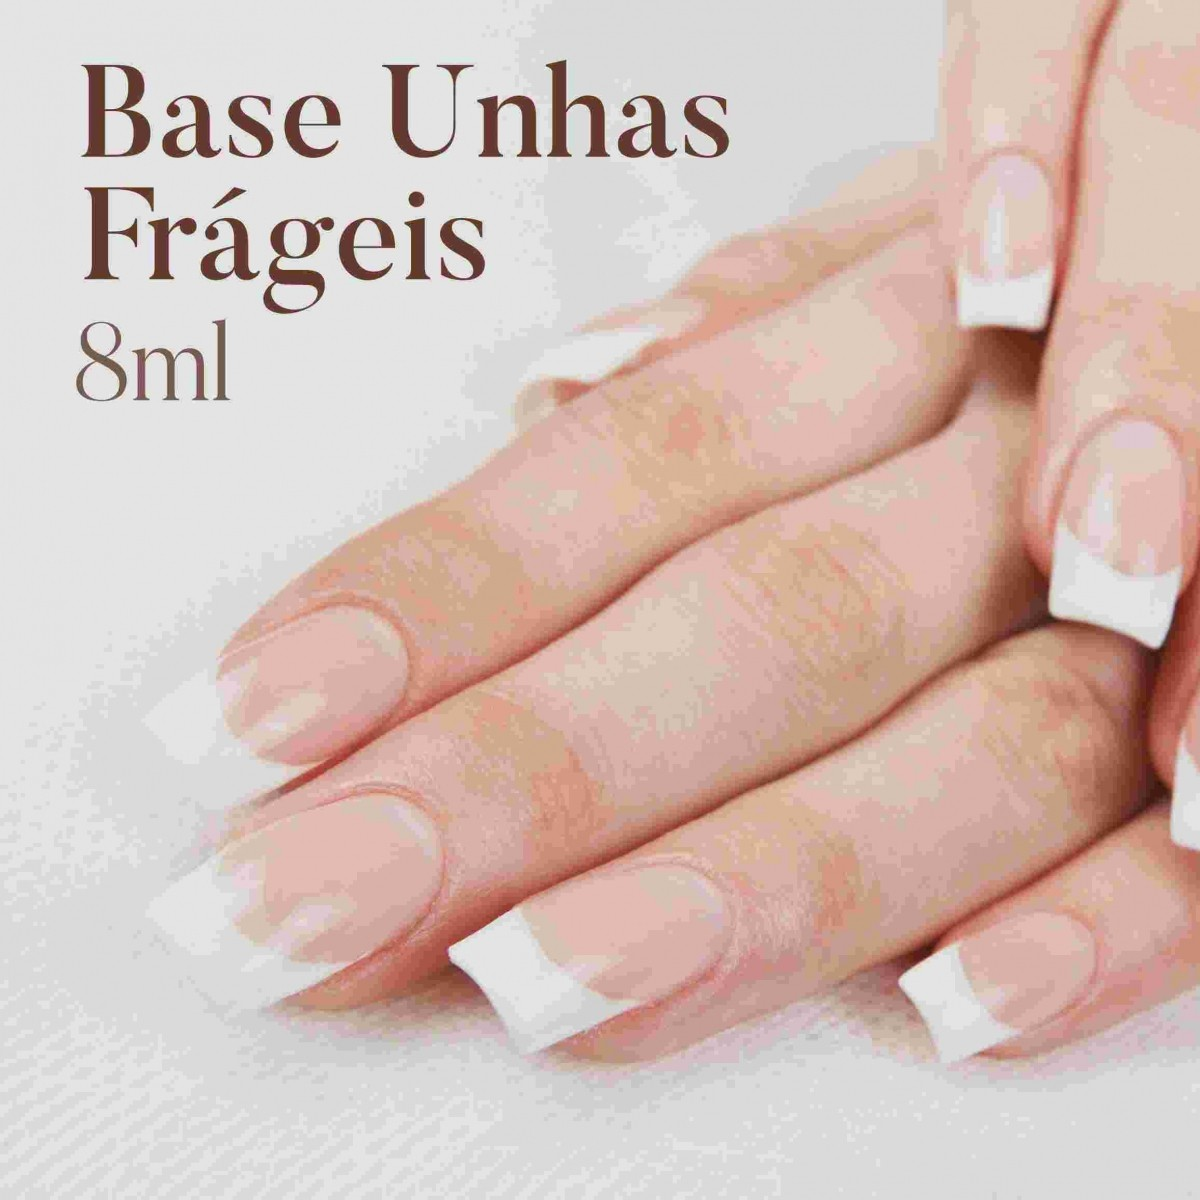 Base unhas frágeis - 8 ml